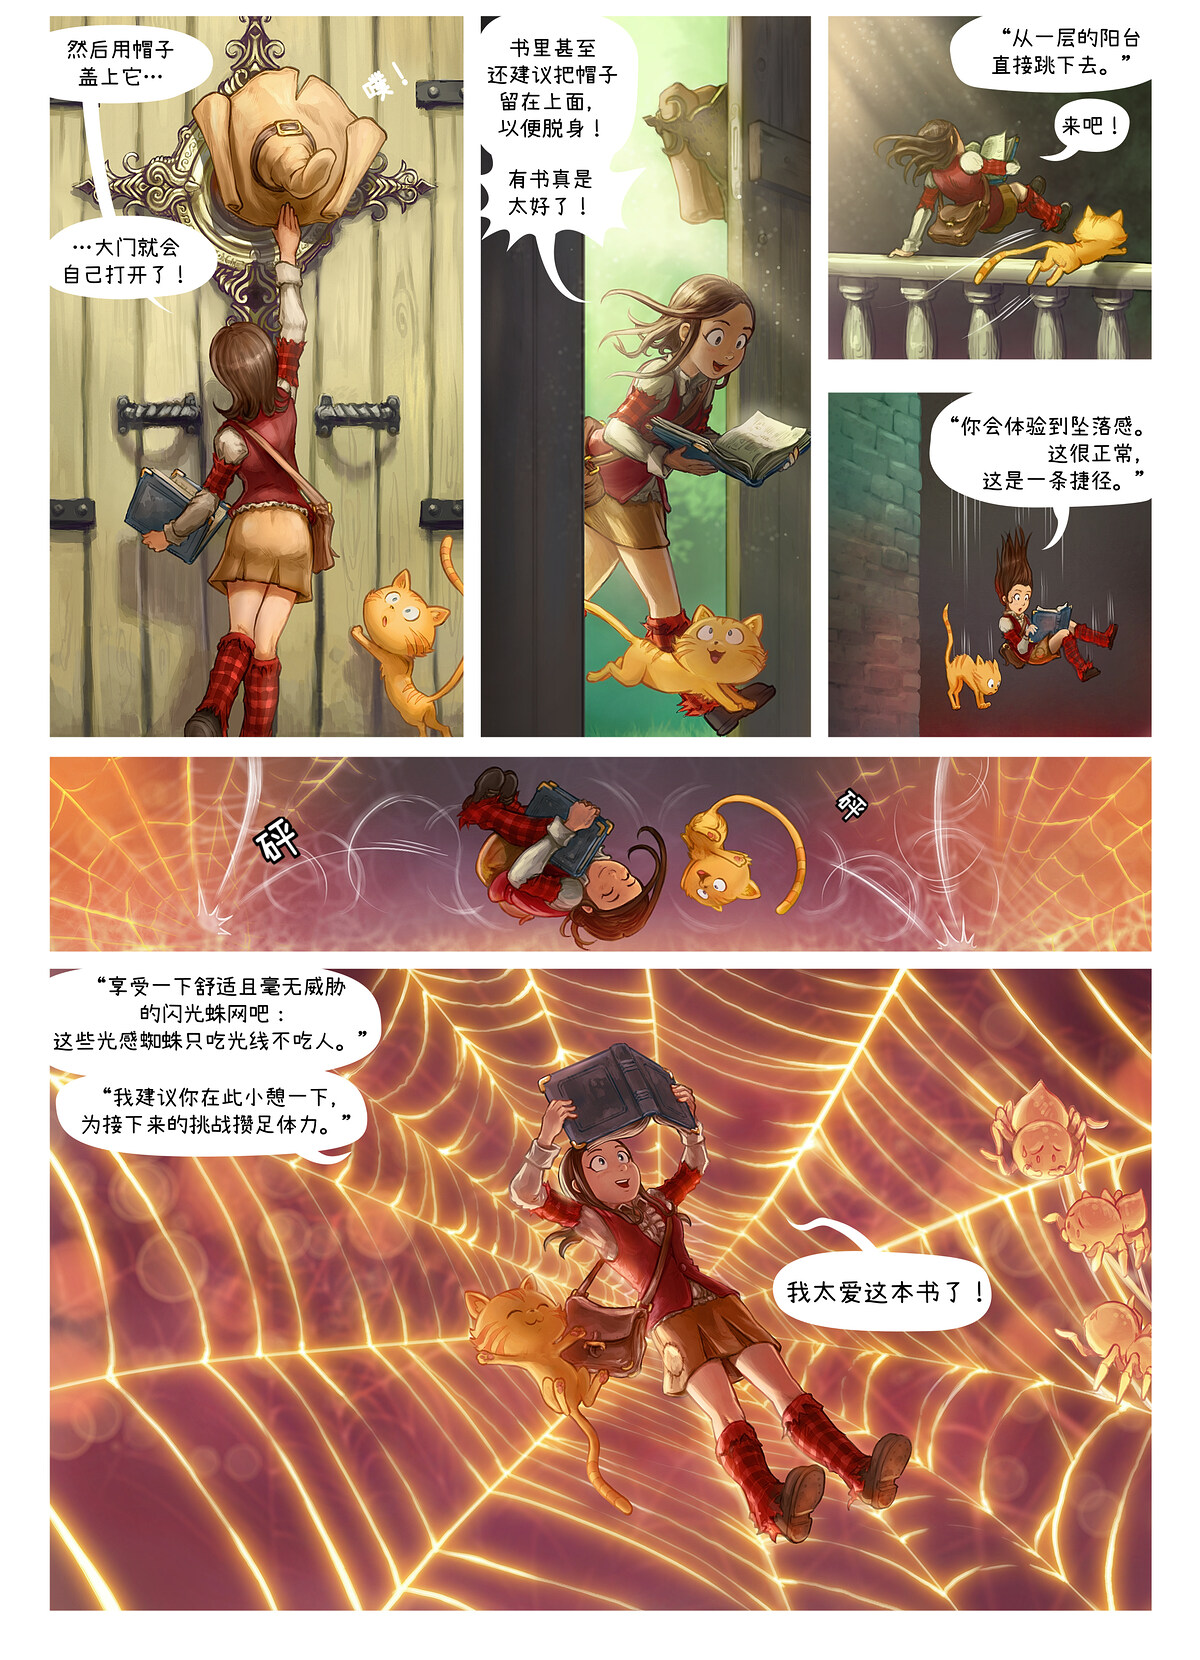 A webcomic page of Pepper&Carrot, 漫画全集 26 [cn], 页面 2